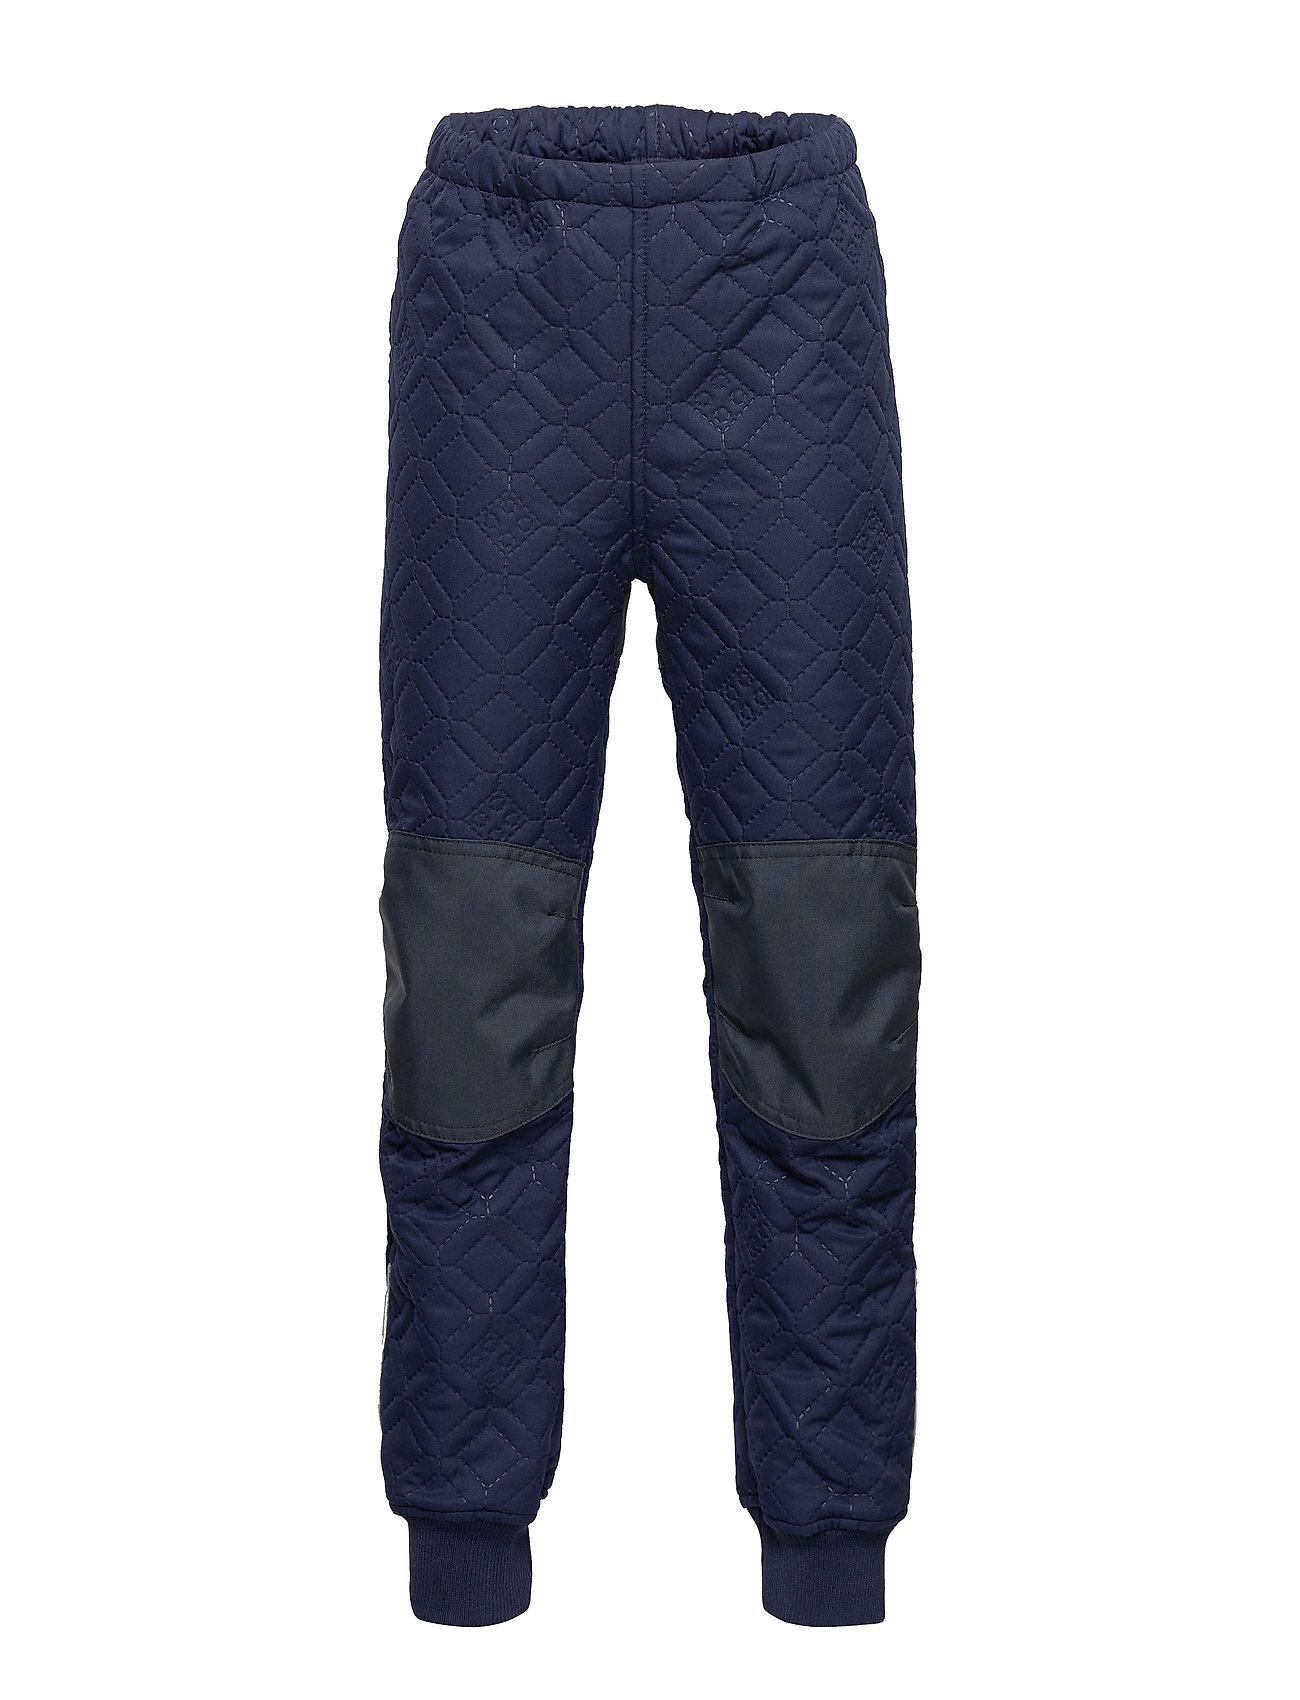 Lwpoul 200 - Pant Outerwear Thermo Outerwear Thermo Trousers Sininen Lego Wear